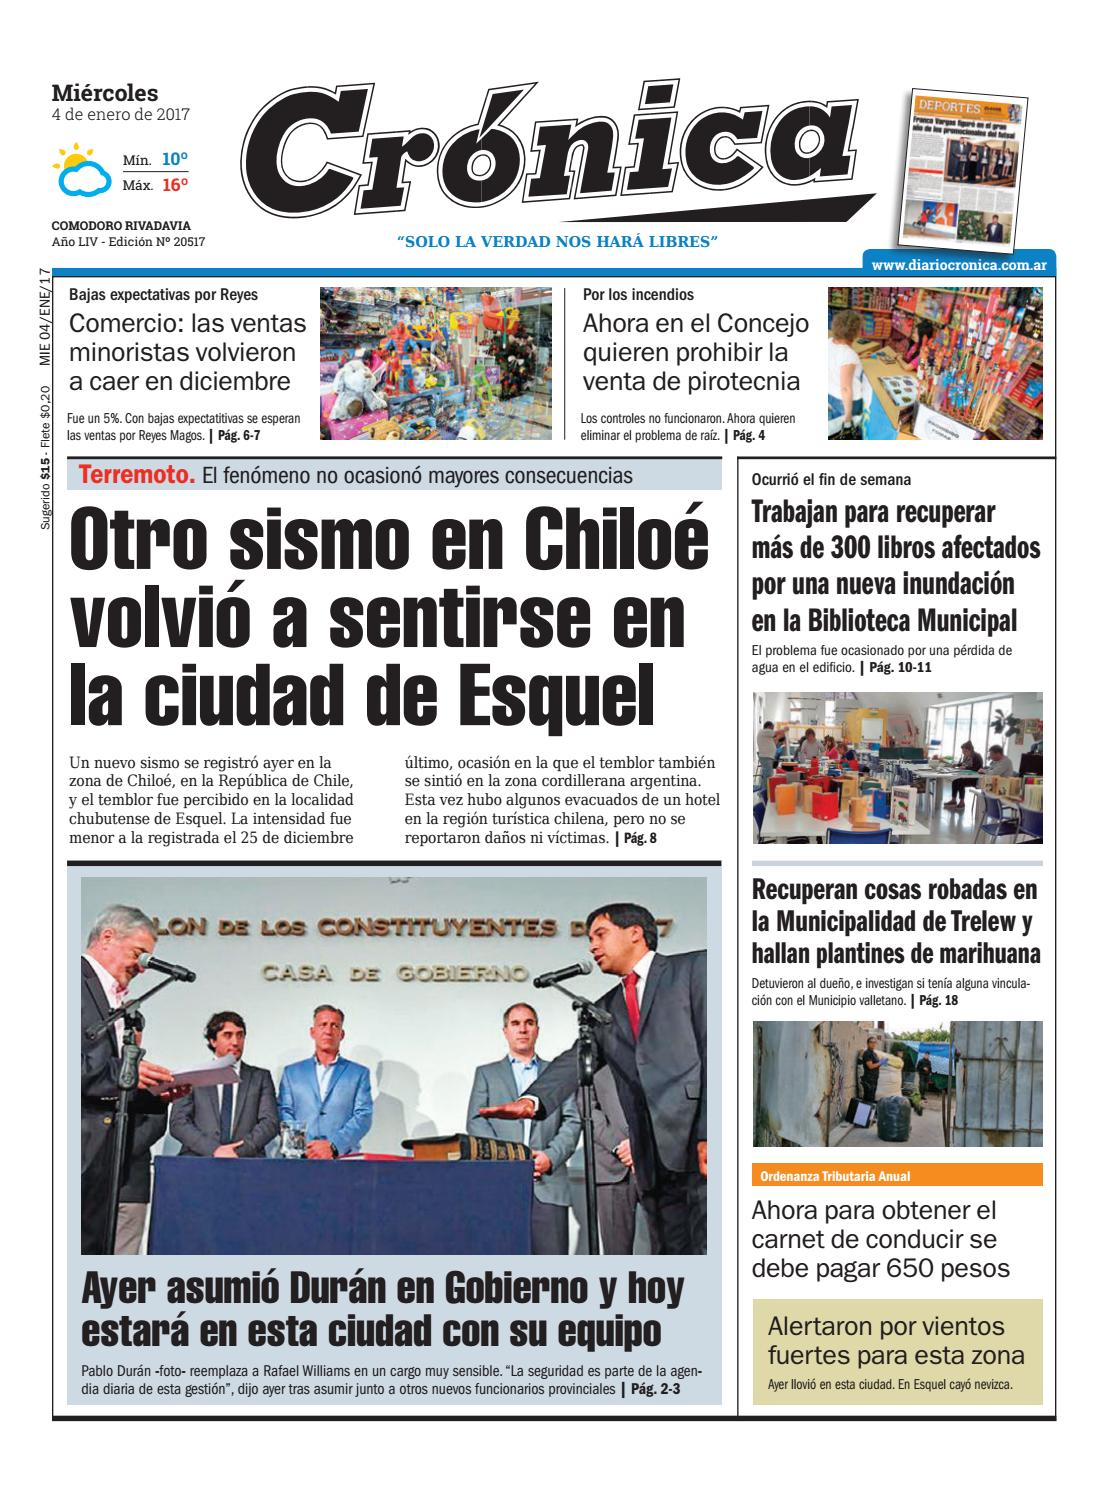 E285d68a260a1057be44f2fdf992498d by Diario Crónica - issuu